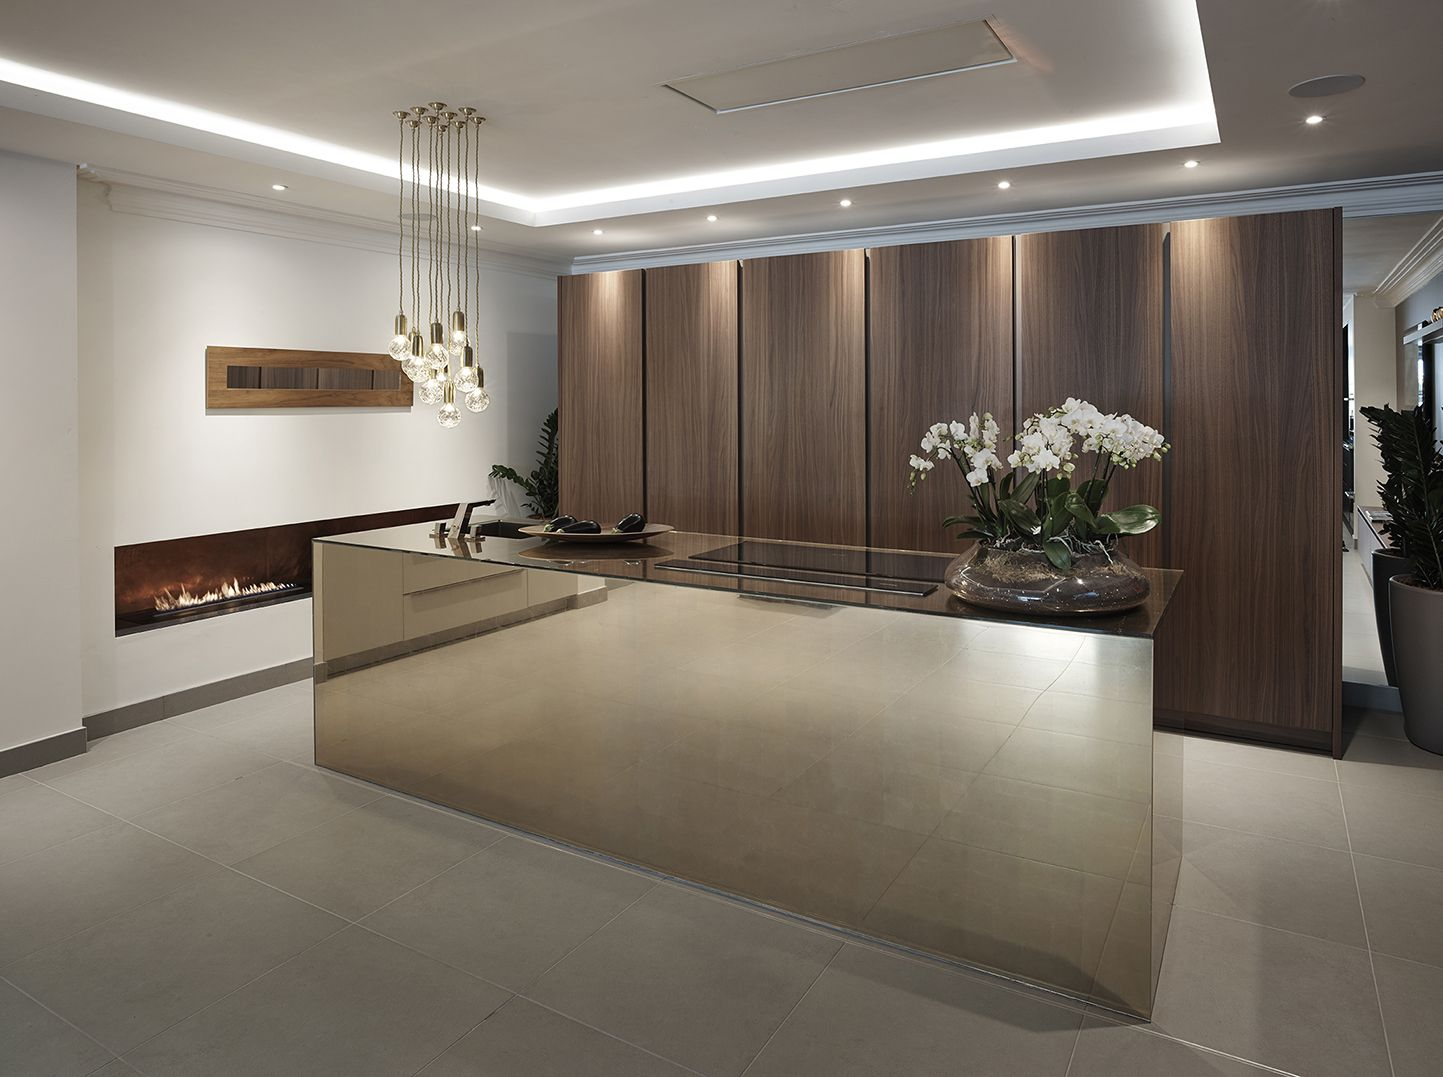 Miele Kitchen Design Stylish Classic Contemporary Kitchen Siematic S2 Kitchen